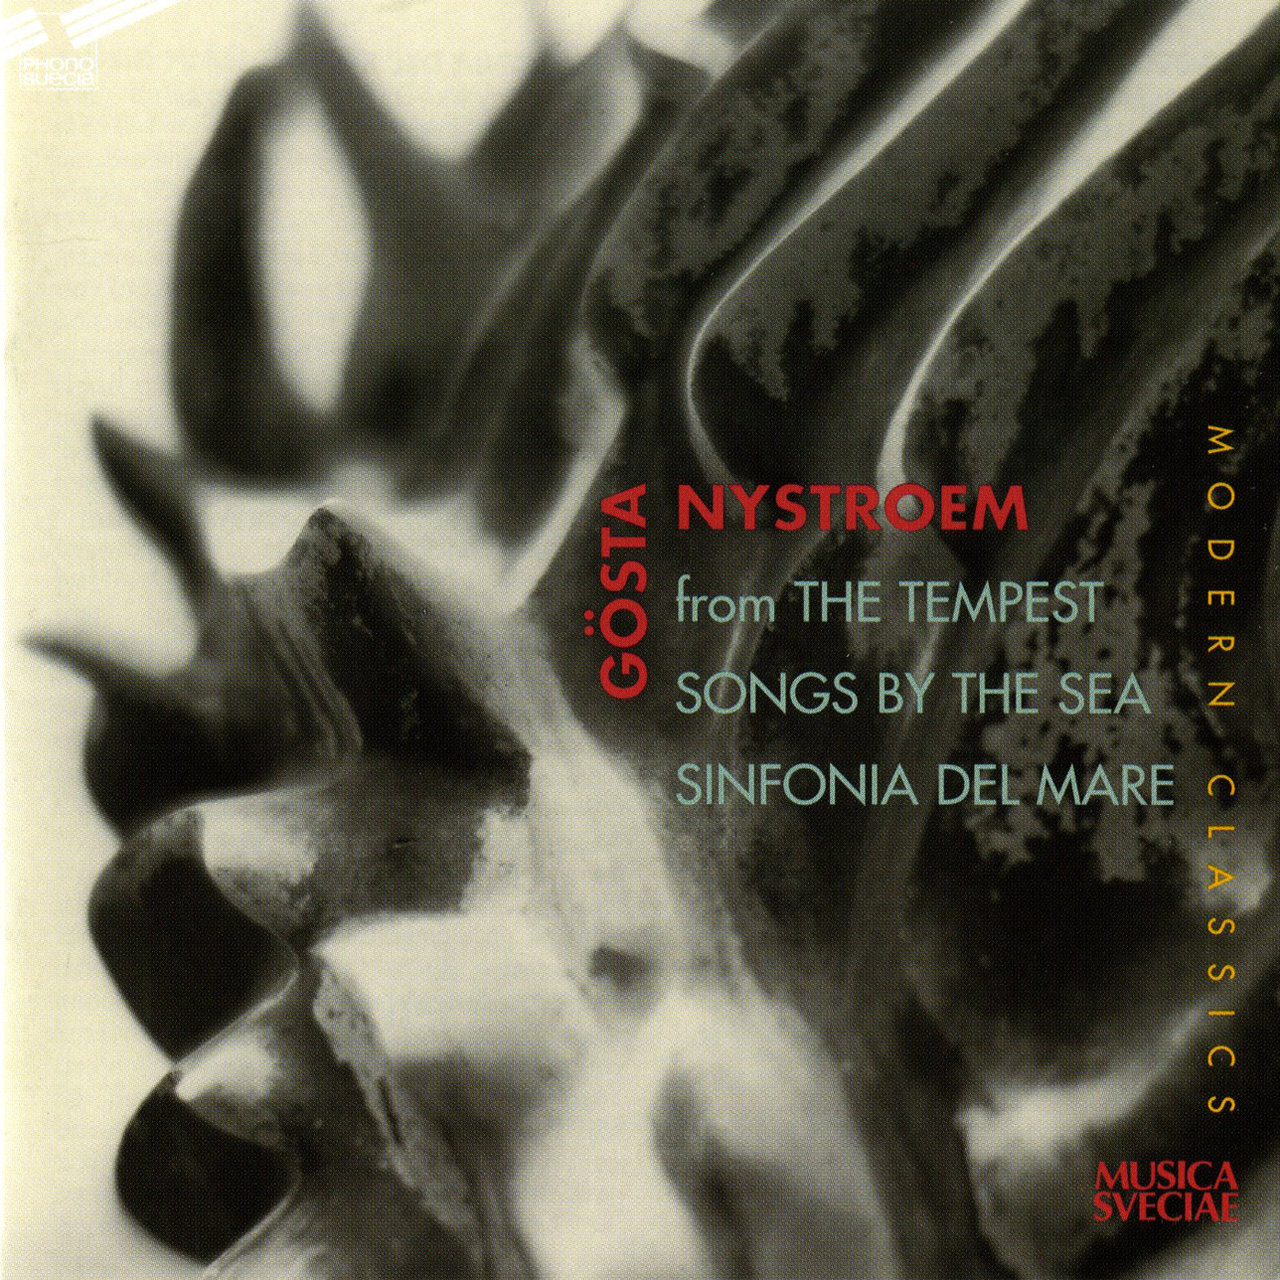 Nystroem: The Tempest, Songs by the Sea, & Sinfonia del mare